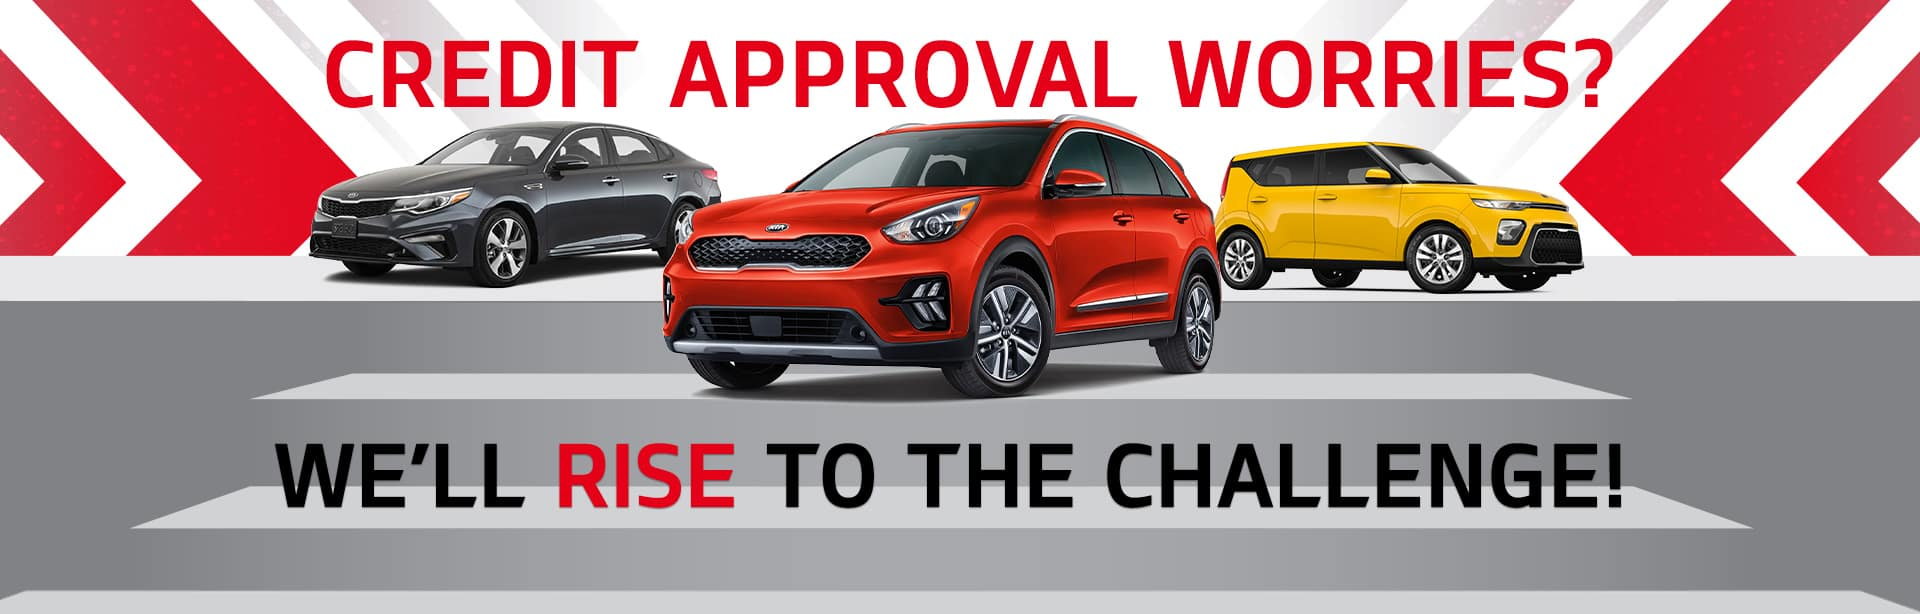 Credit Approval Worries? We'll Rise To The Challenge!